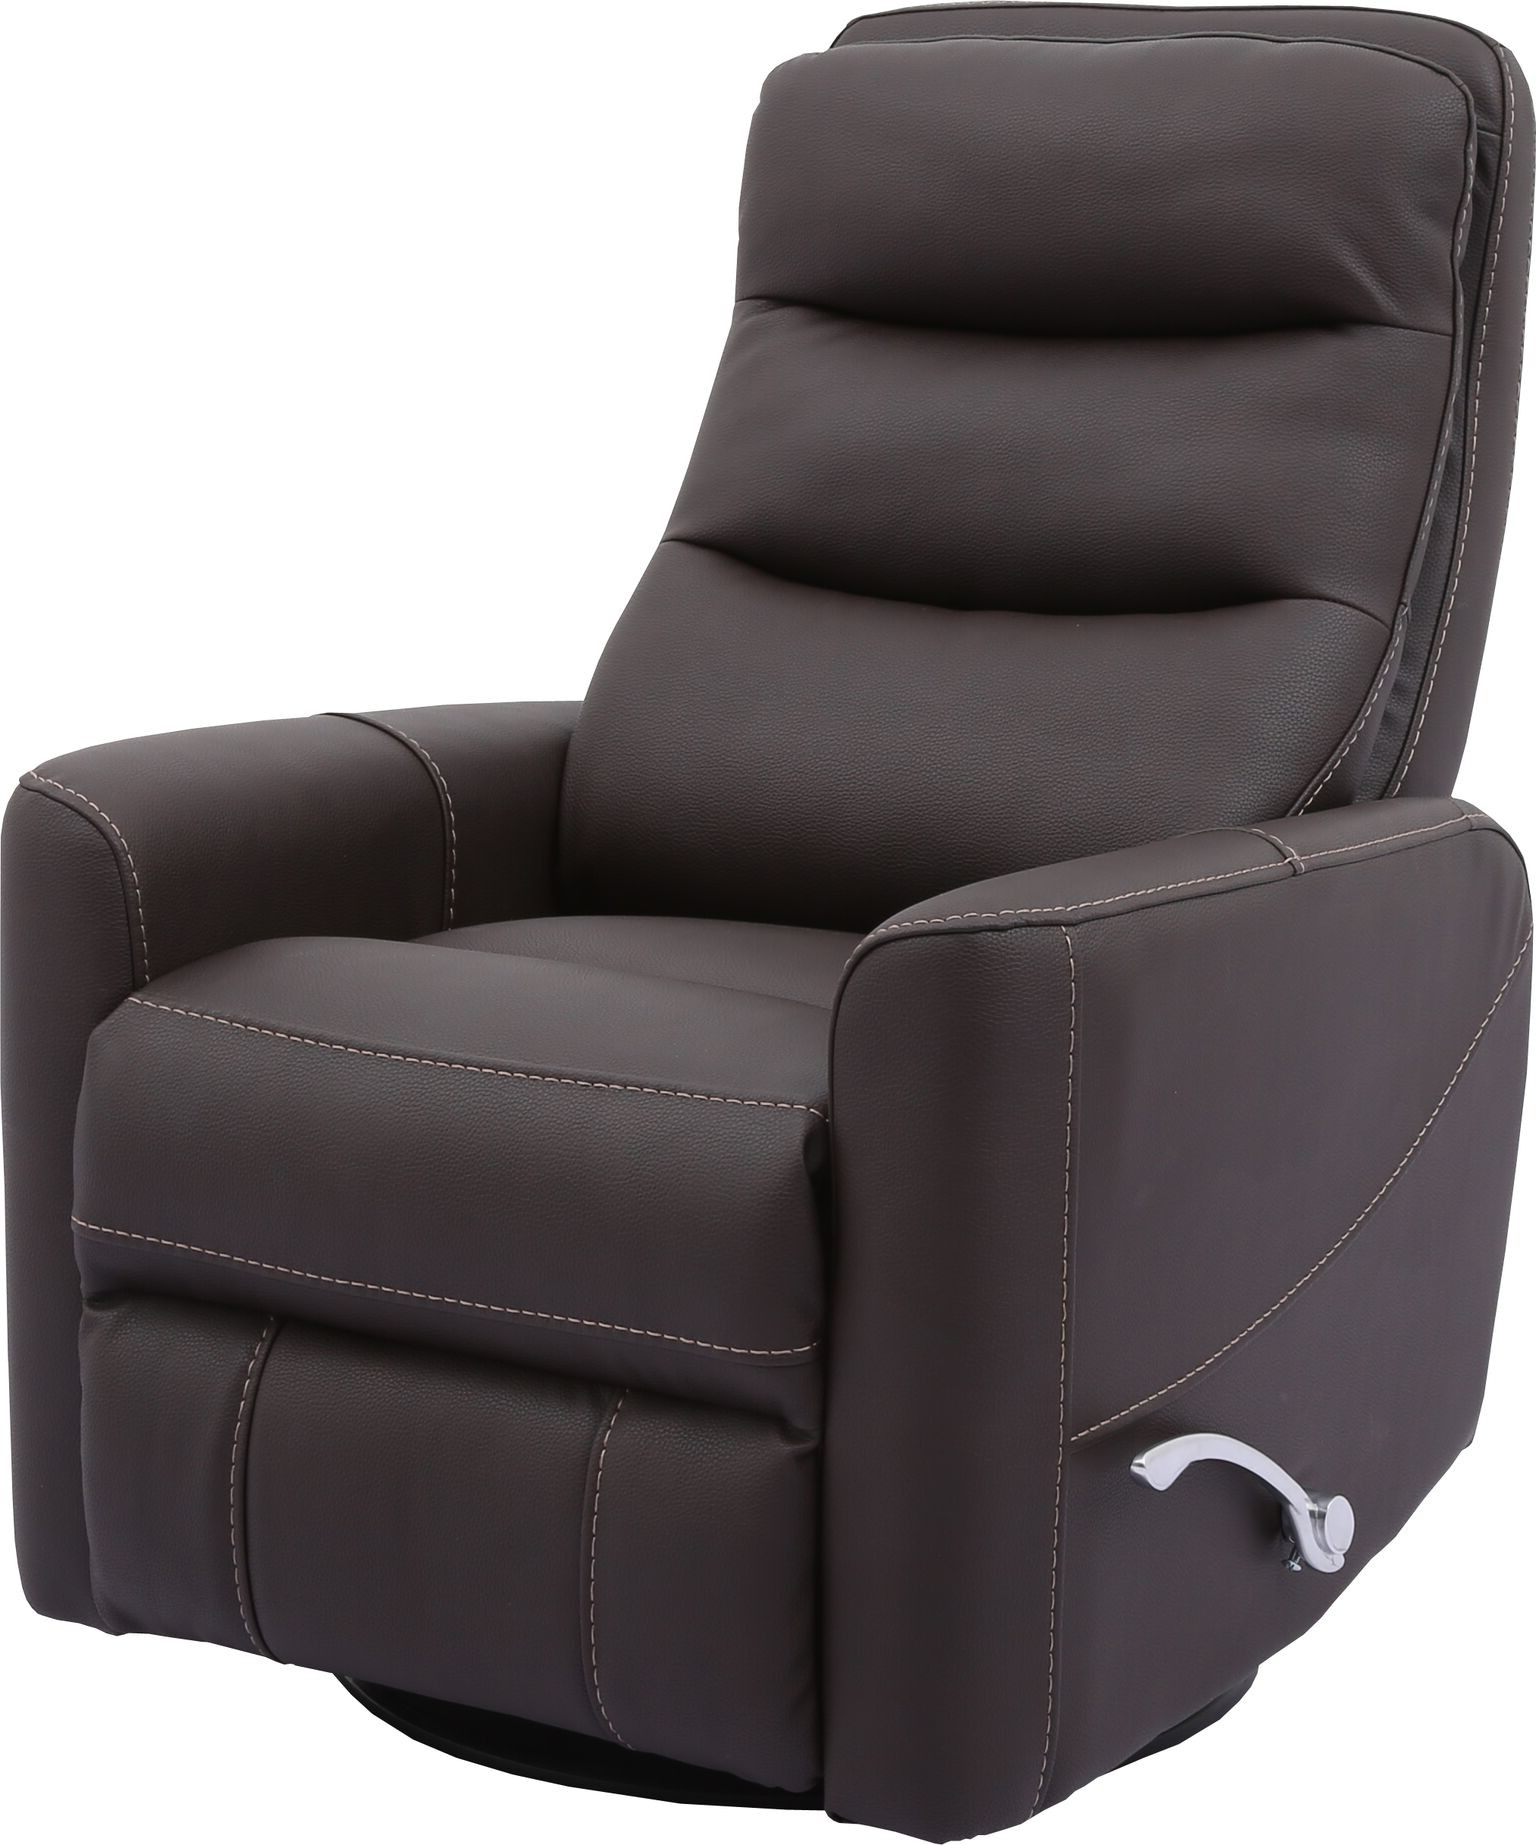 Hercules  Chocolate  Swivel Glider Recliner With Articulating Headrest In Current Hercules Chocolate Swivel Glider Recliners (Gallery 1 of 20)